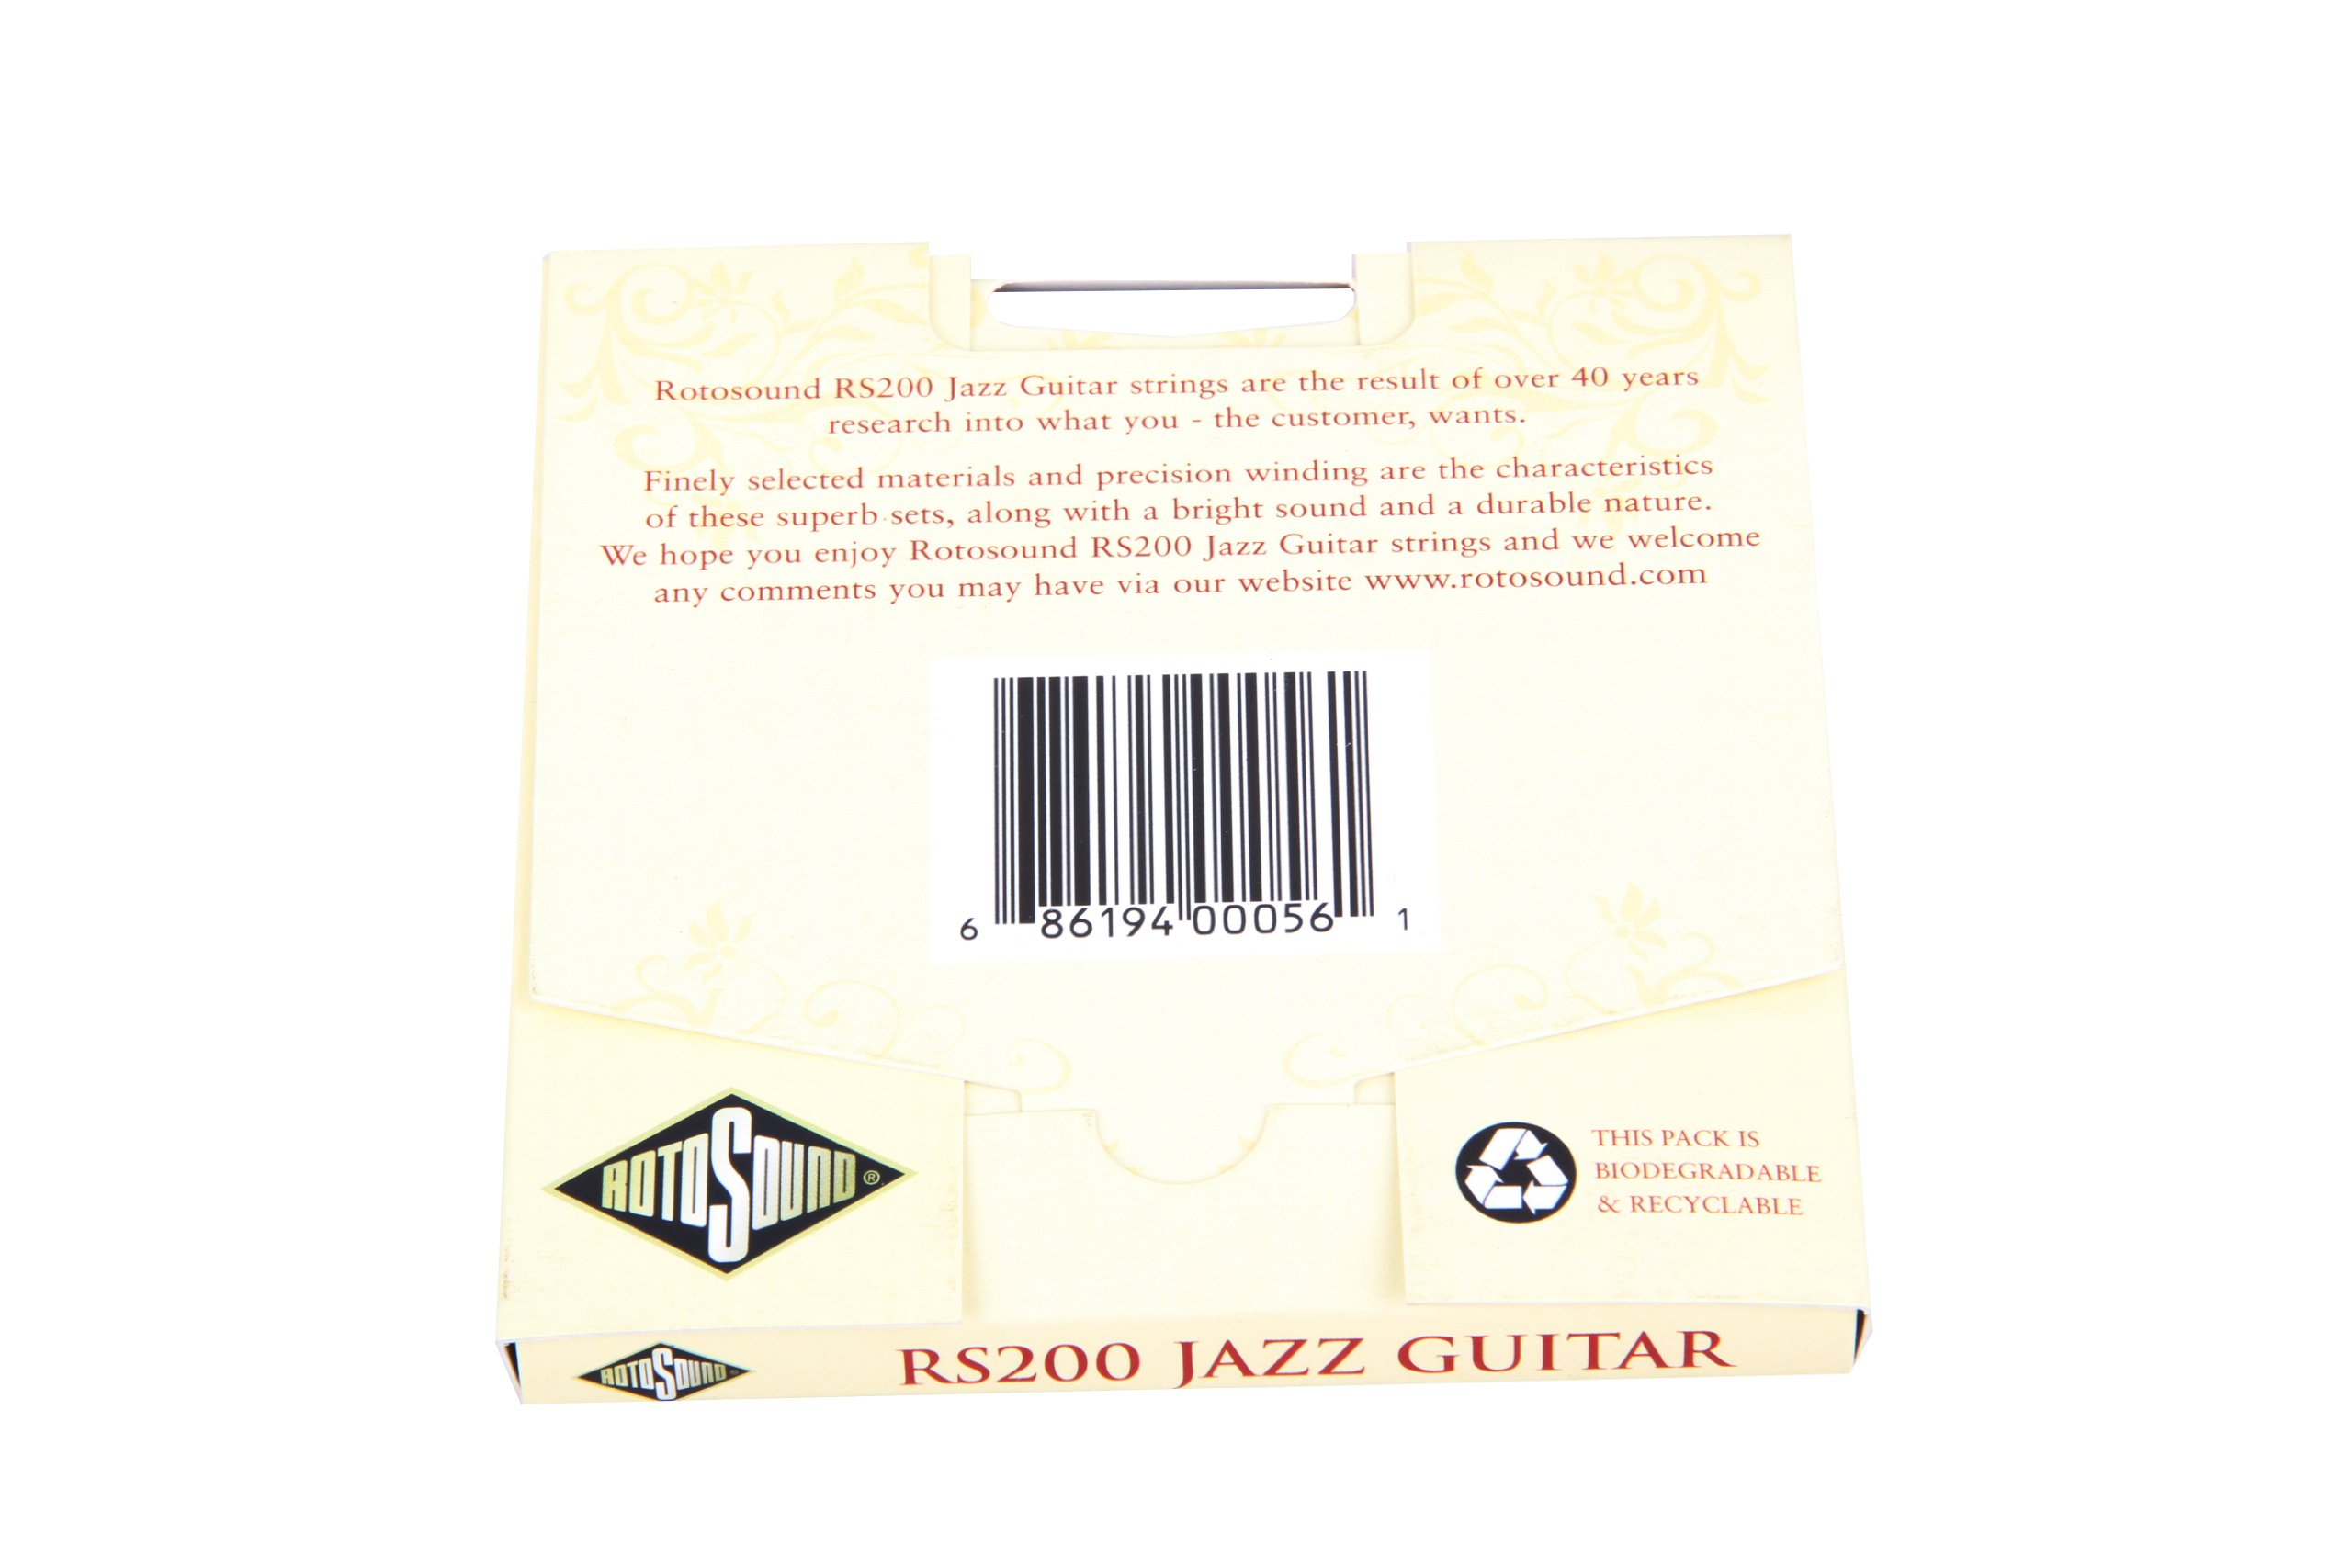 Rock Star Academy Rotosound Strings Folk